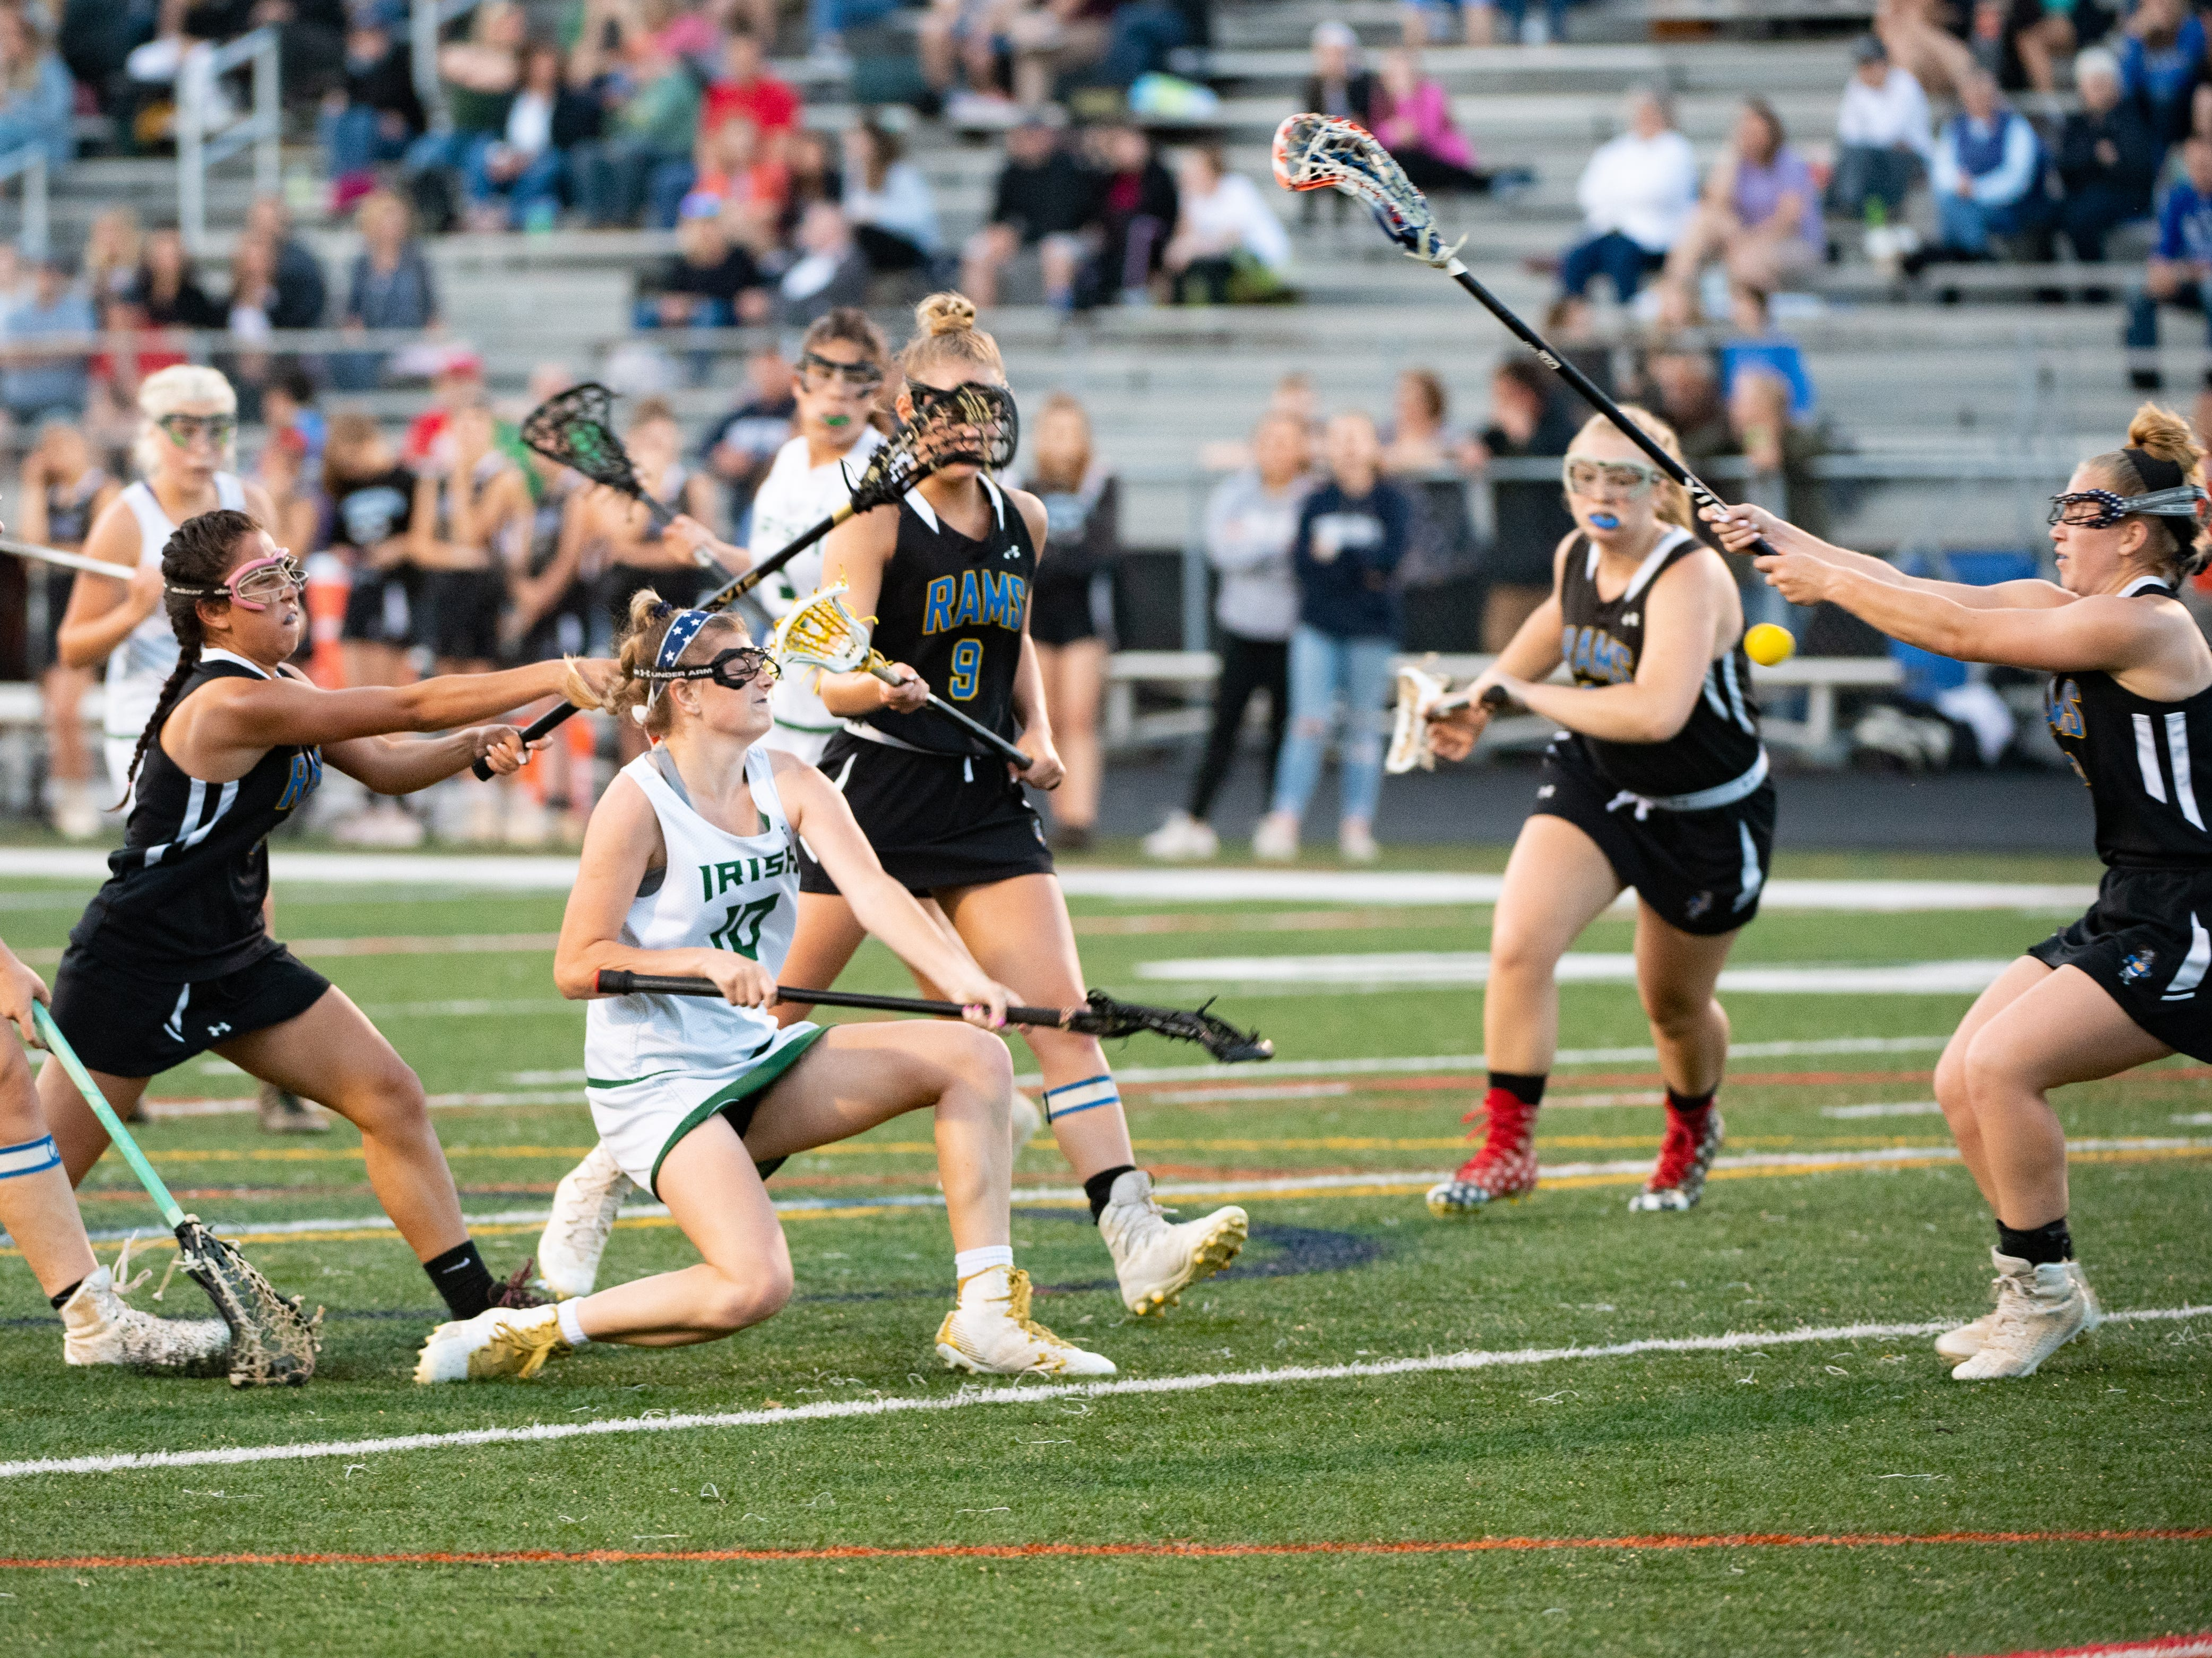 Sydney Mentzer (10) takes a shot during the YAIAA girls lacrosse championship game between York Catholic and Kennard-Dale, May 10, 2019 at Eastern York High School. The Rams defeated the Fighting Irish 11 to 10.